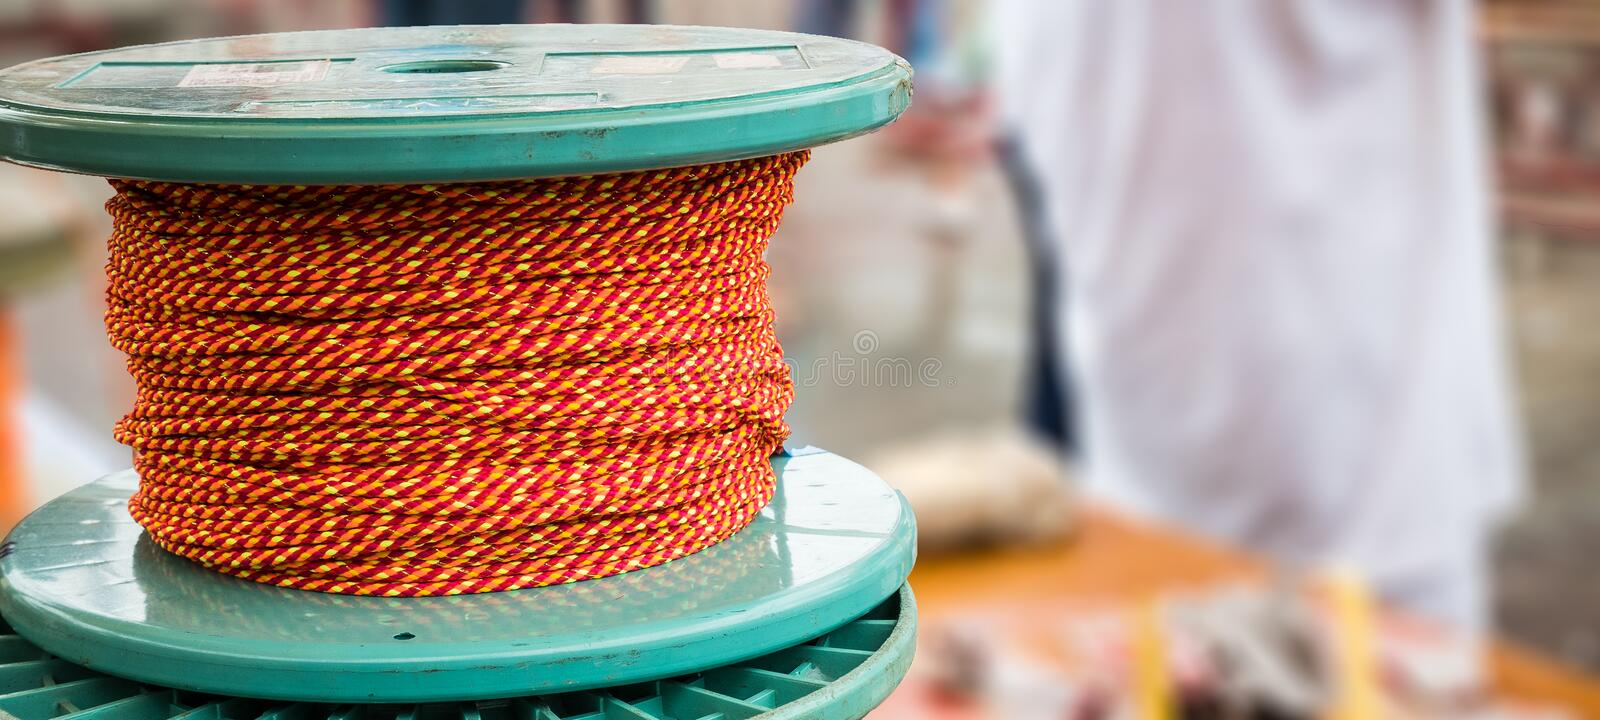 Rope roll or knitting wool with blur background.  royalty free stock photos